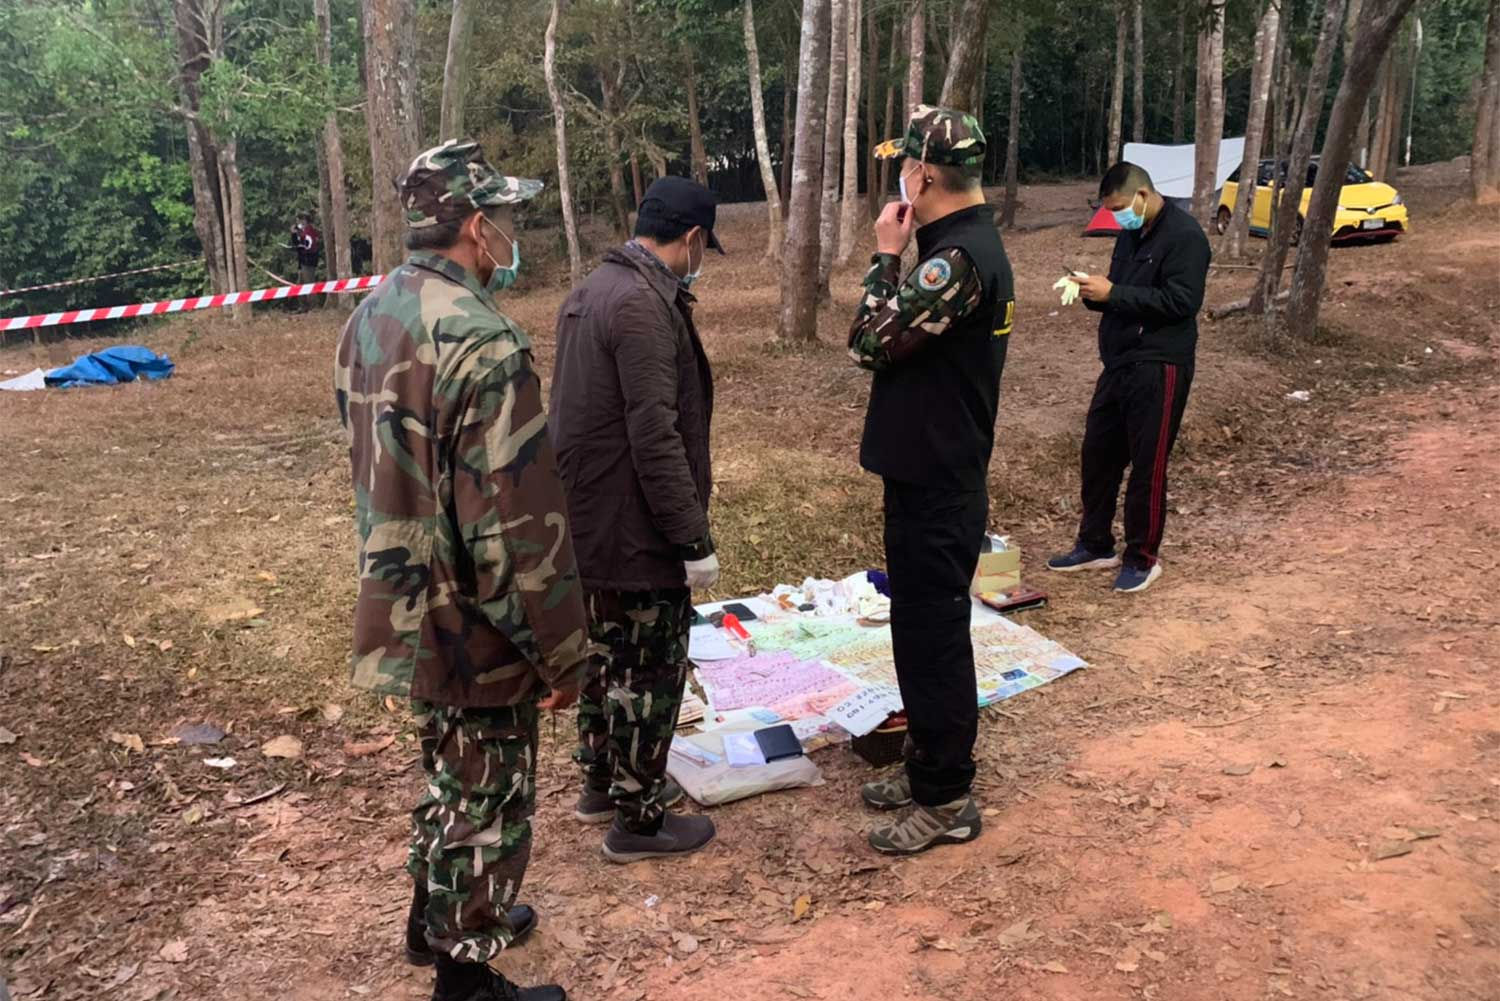 Park officials and police at the scene where a wild elephant killed an elderly man sleeping in a tent, at Pha Kluai Mai camping area in Khao Yai National Park, Pak Chong district, Nakhon Ratchasima, on Friday. (Photo: Supplied/Apinya Wipatayothin)